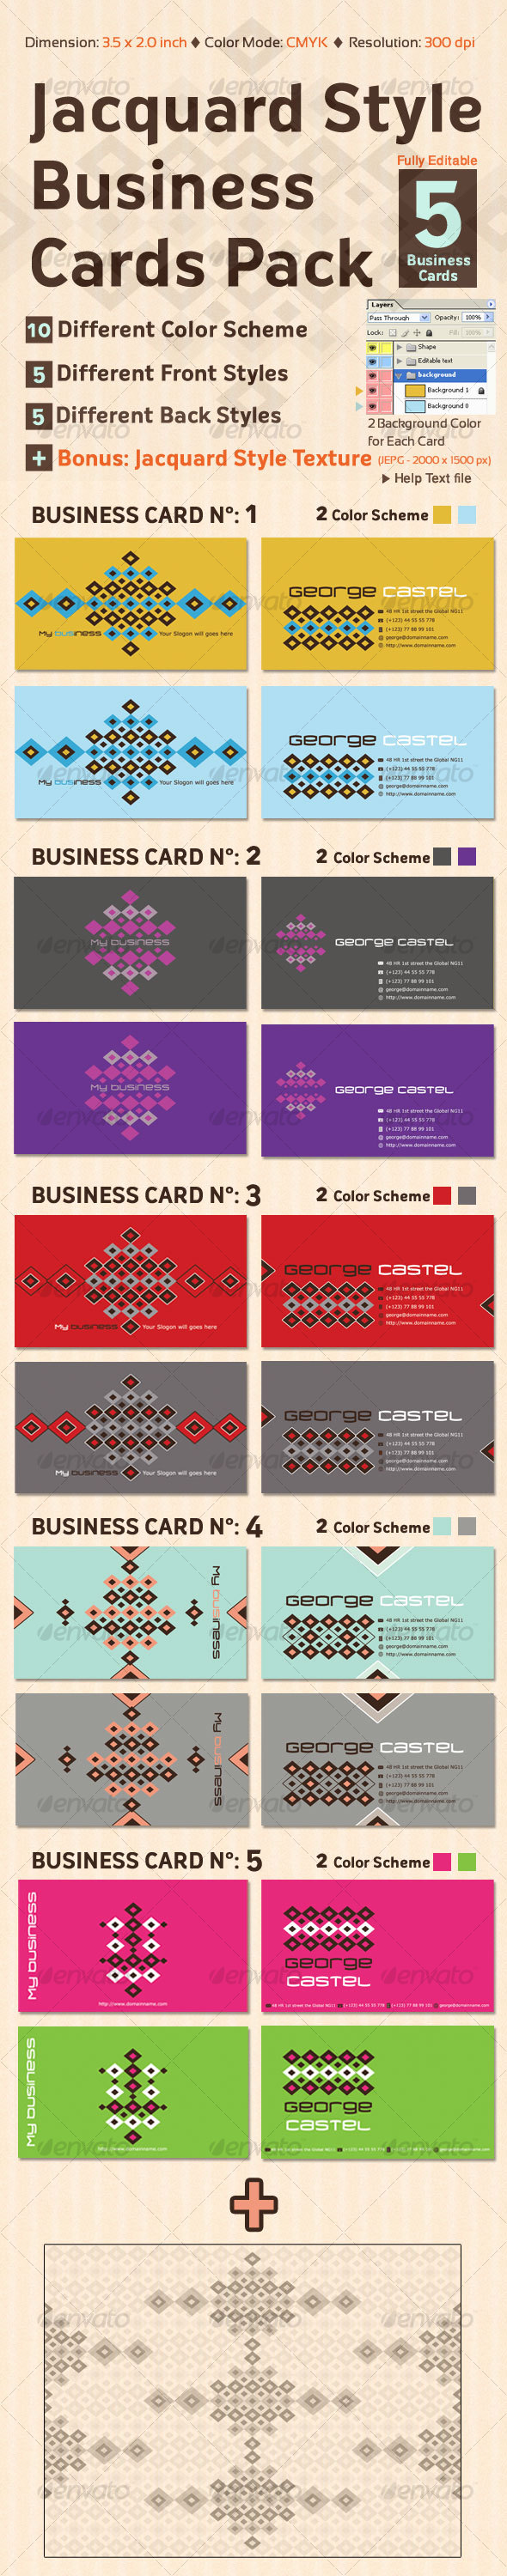 Jacquard Style Business Cards Pack - Retro/Vintage Business Cards